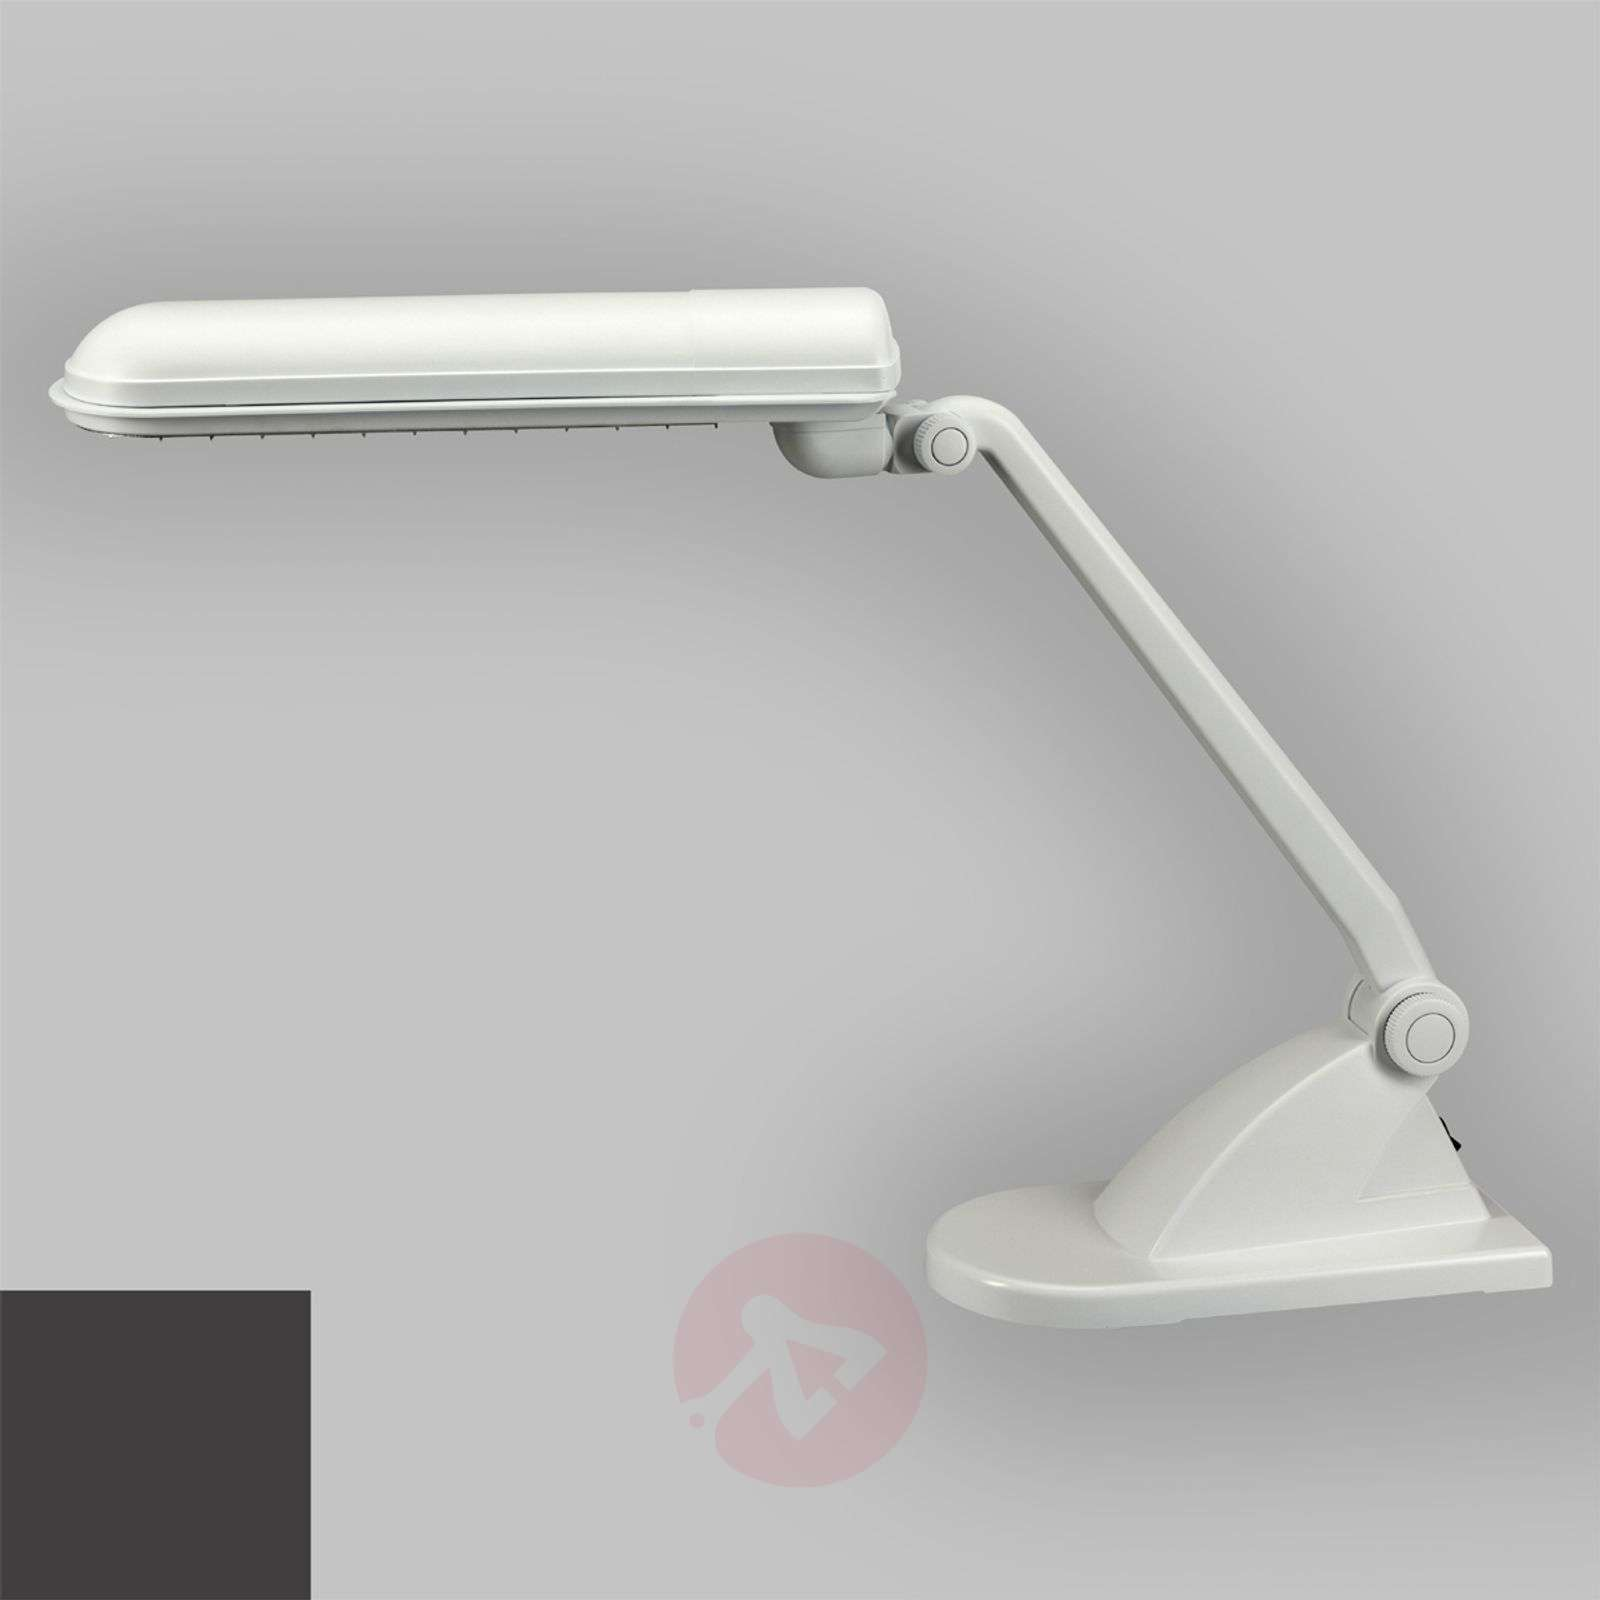 Glare free workplace light Orleander-1003101X-01